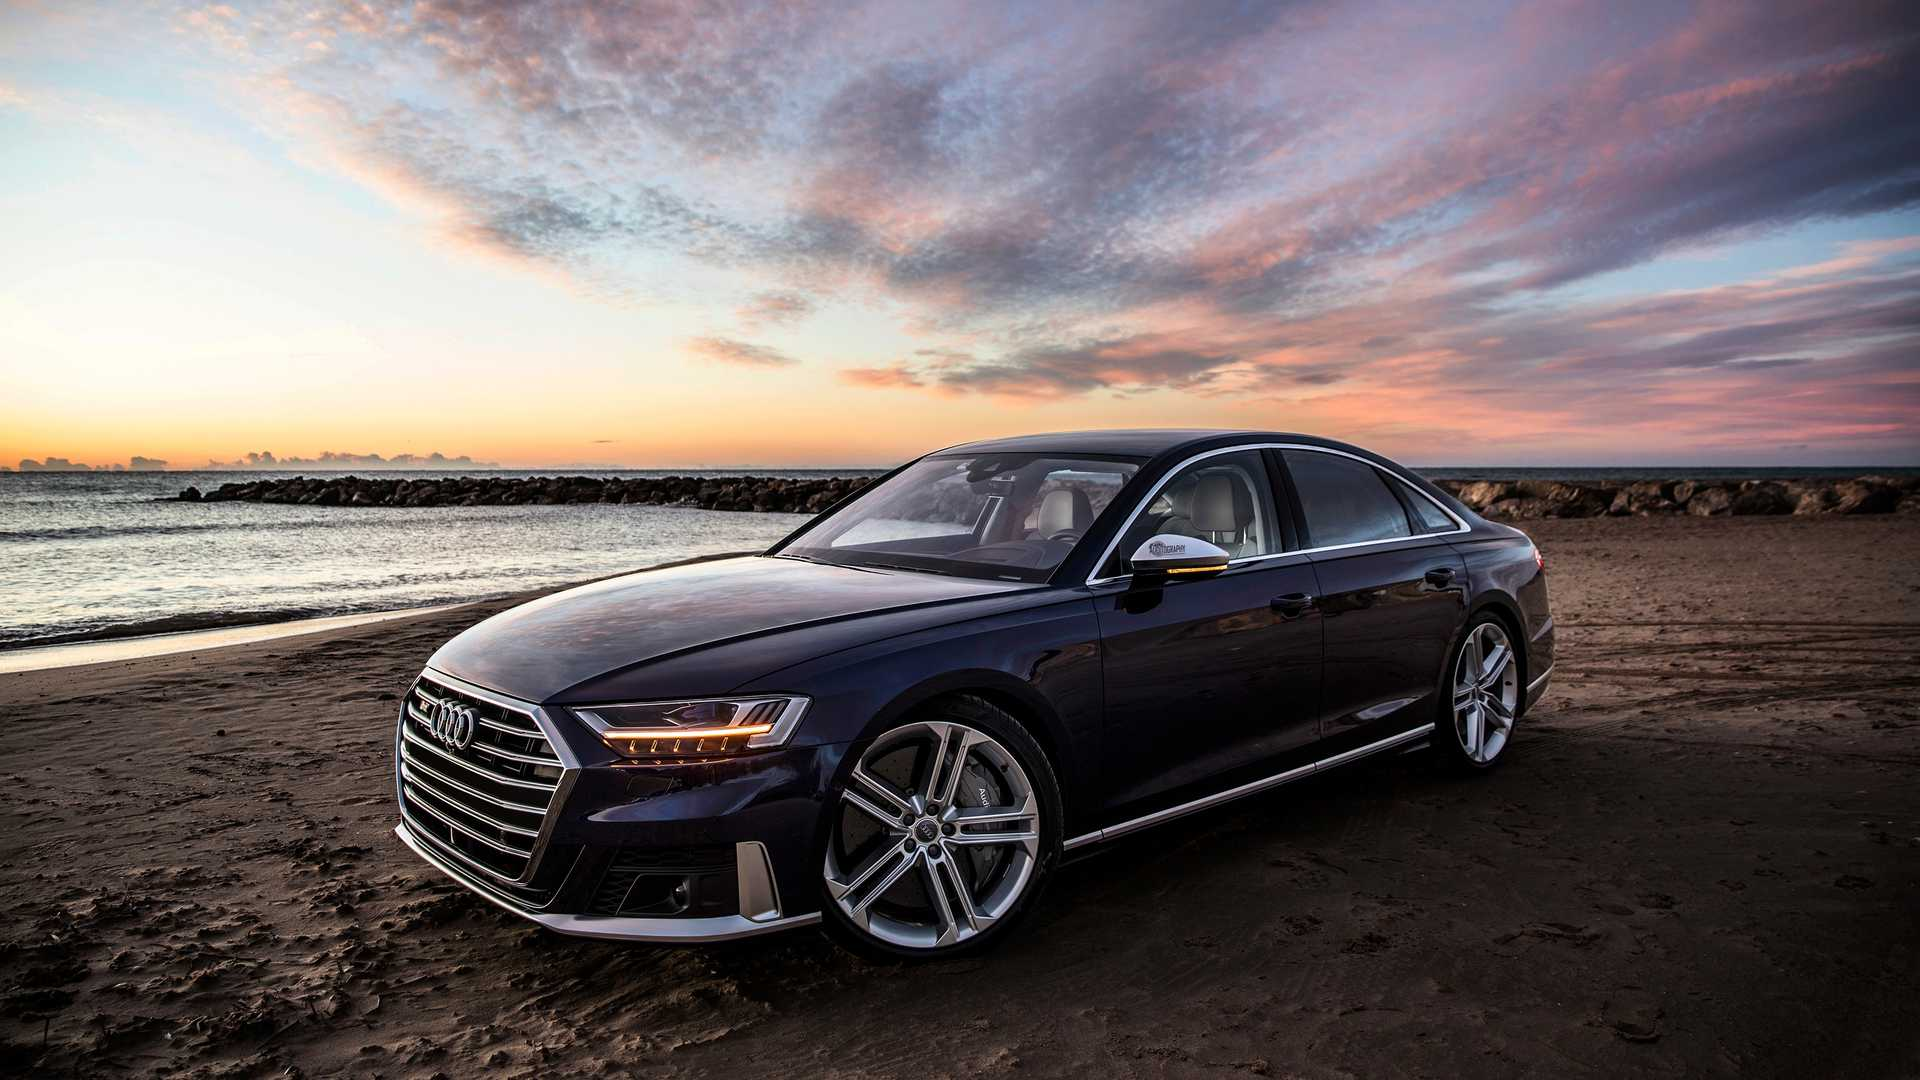 See The New Audi S8 Do 0 To 62 Mph In Only 3 57 Seconds